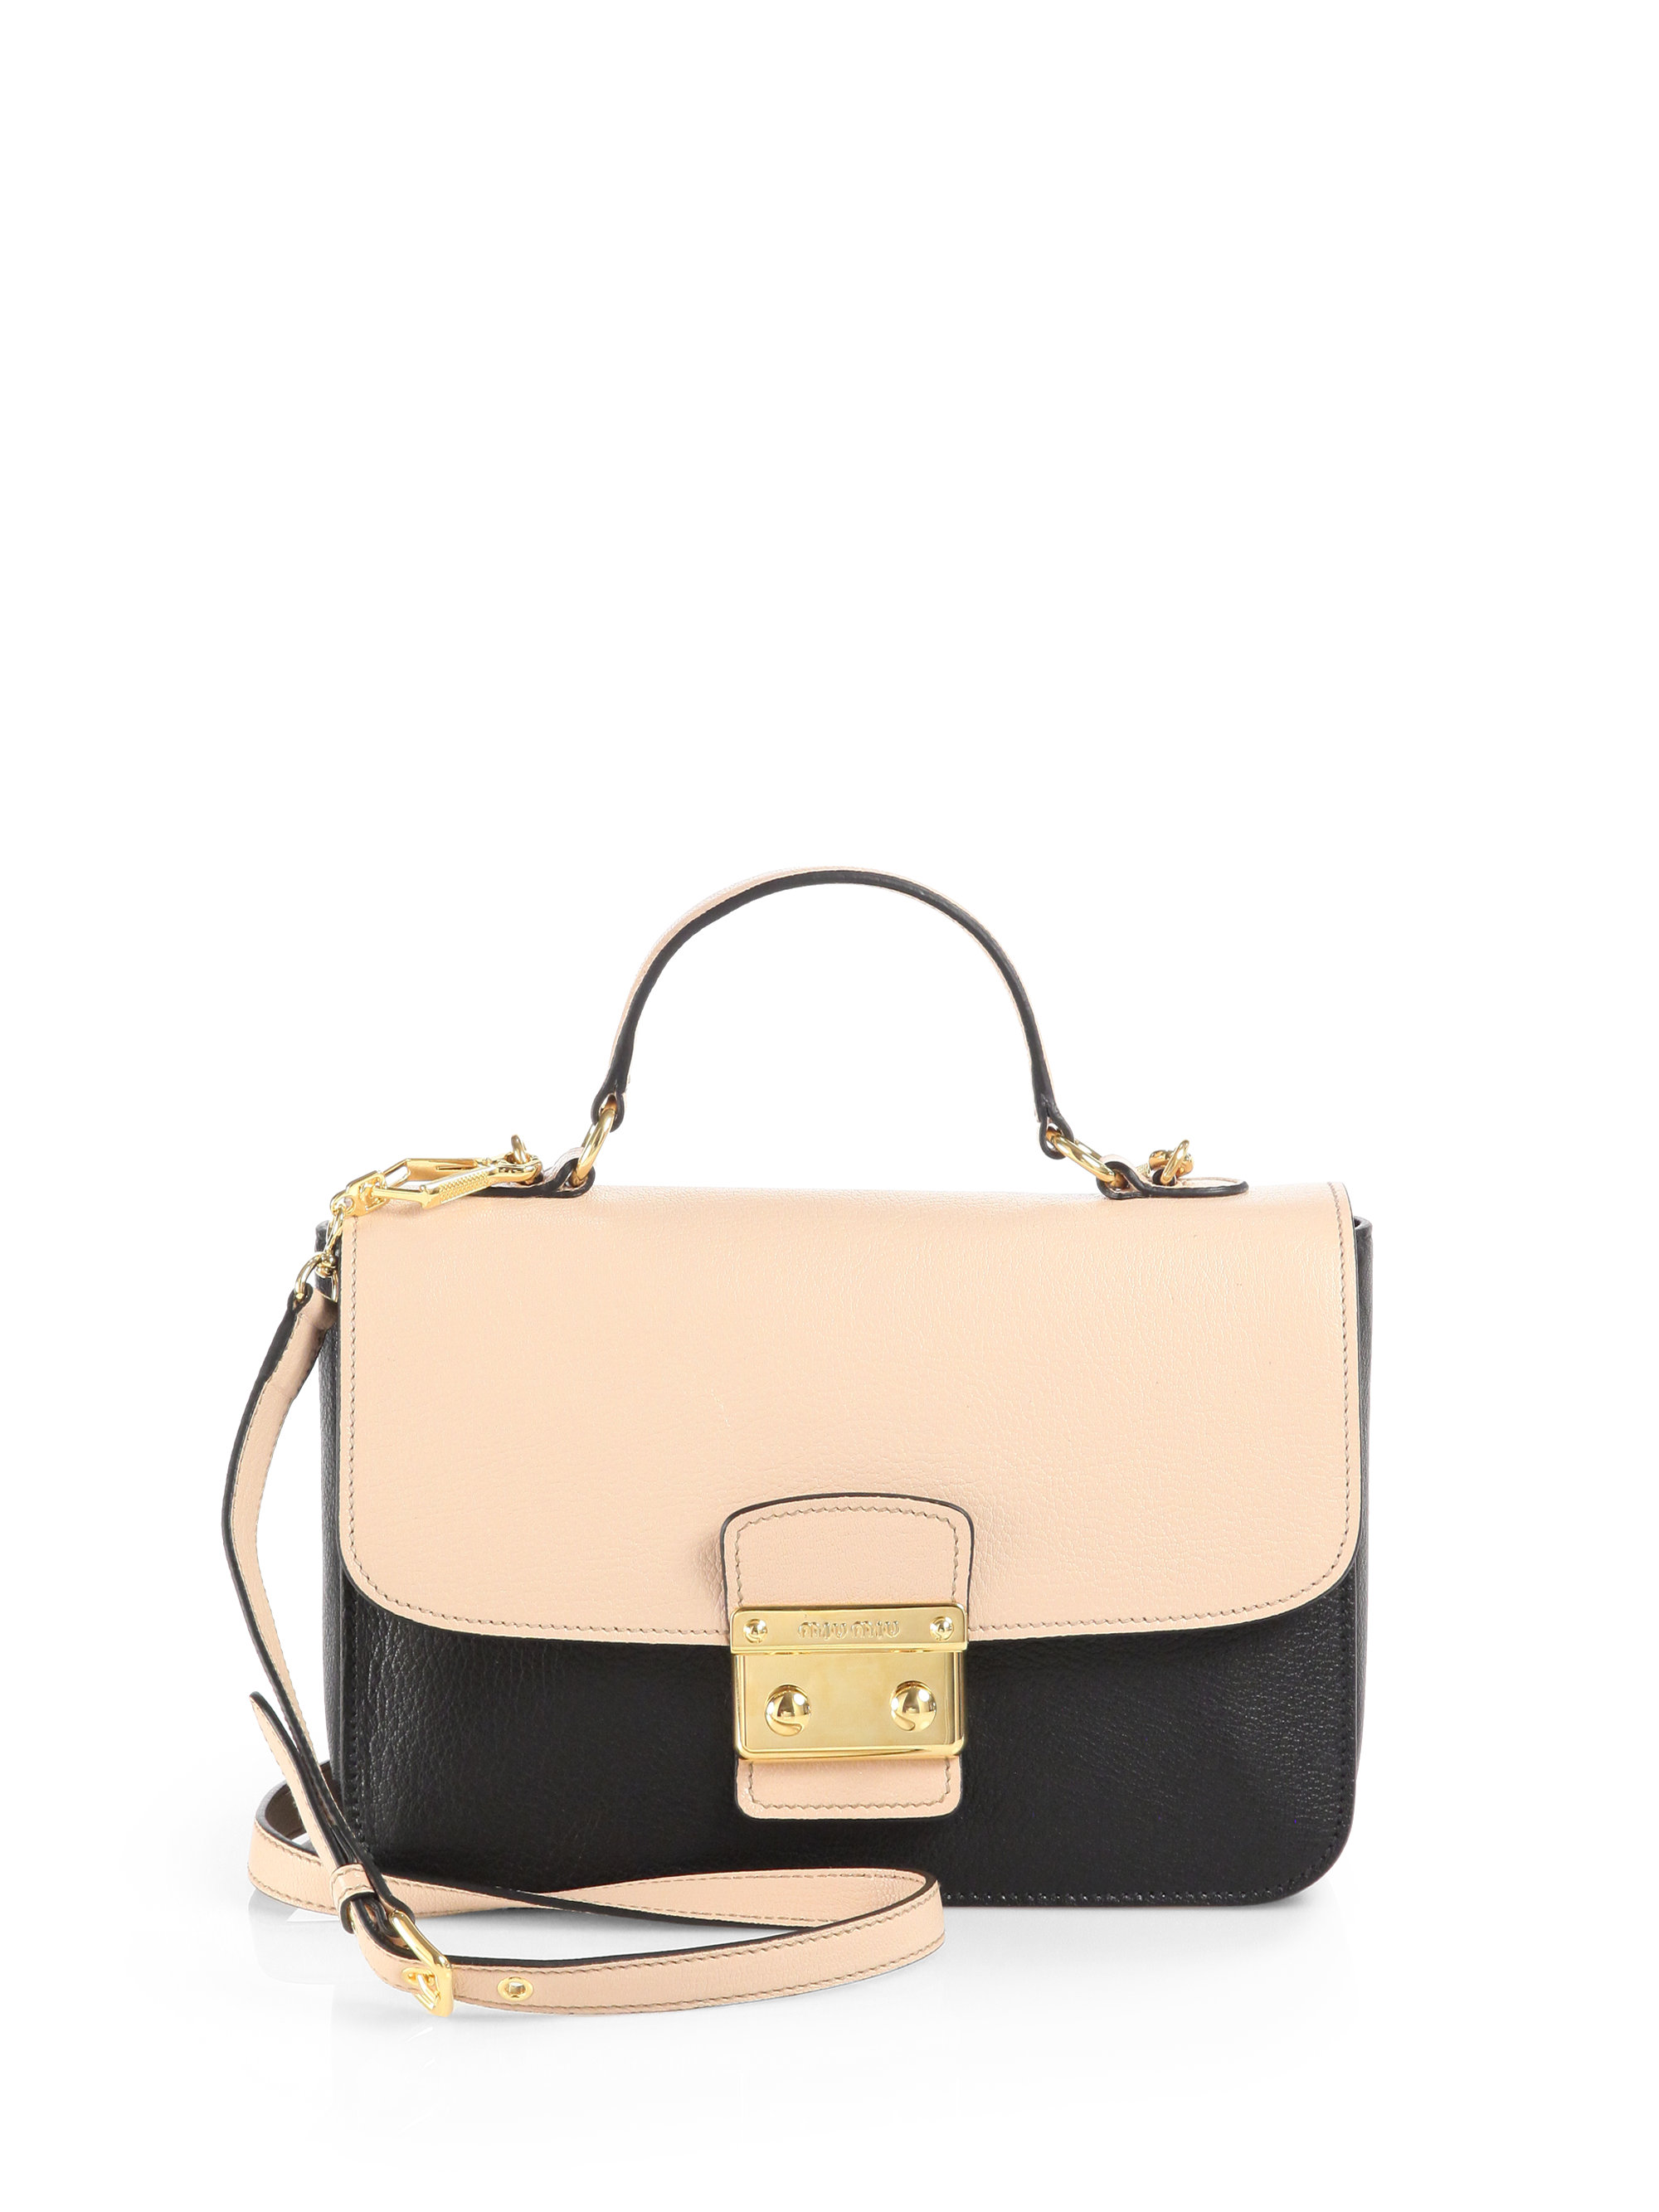 123b09da45ff Gallery. Previously sold at  Saks Fifth Avenue · Women s Miu Miu Shoulder  Bag ...